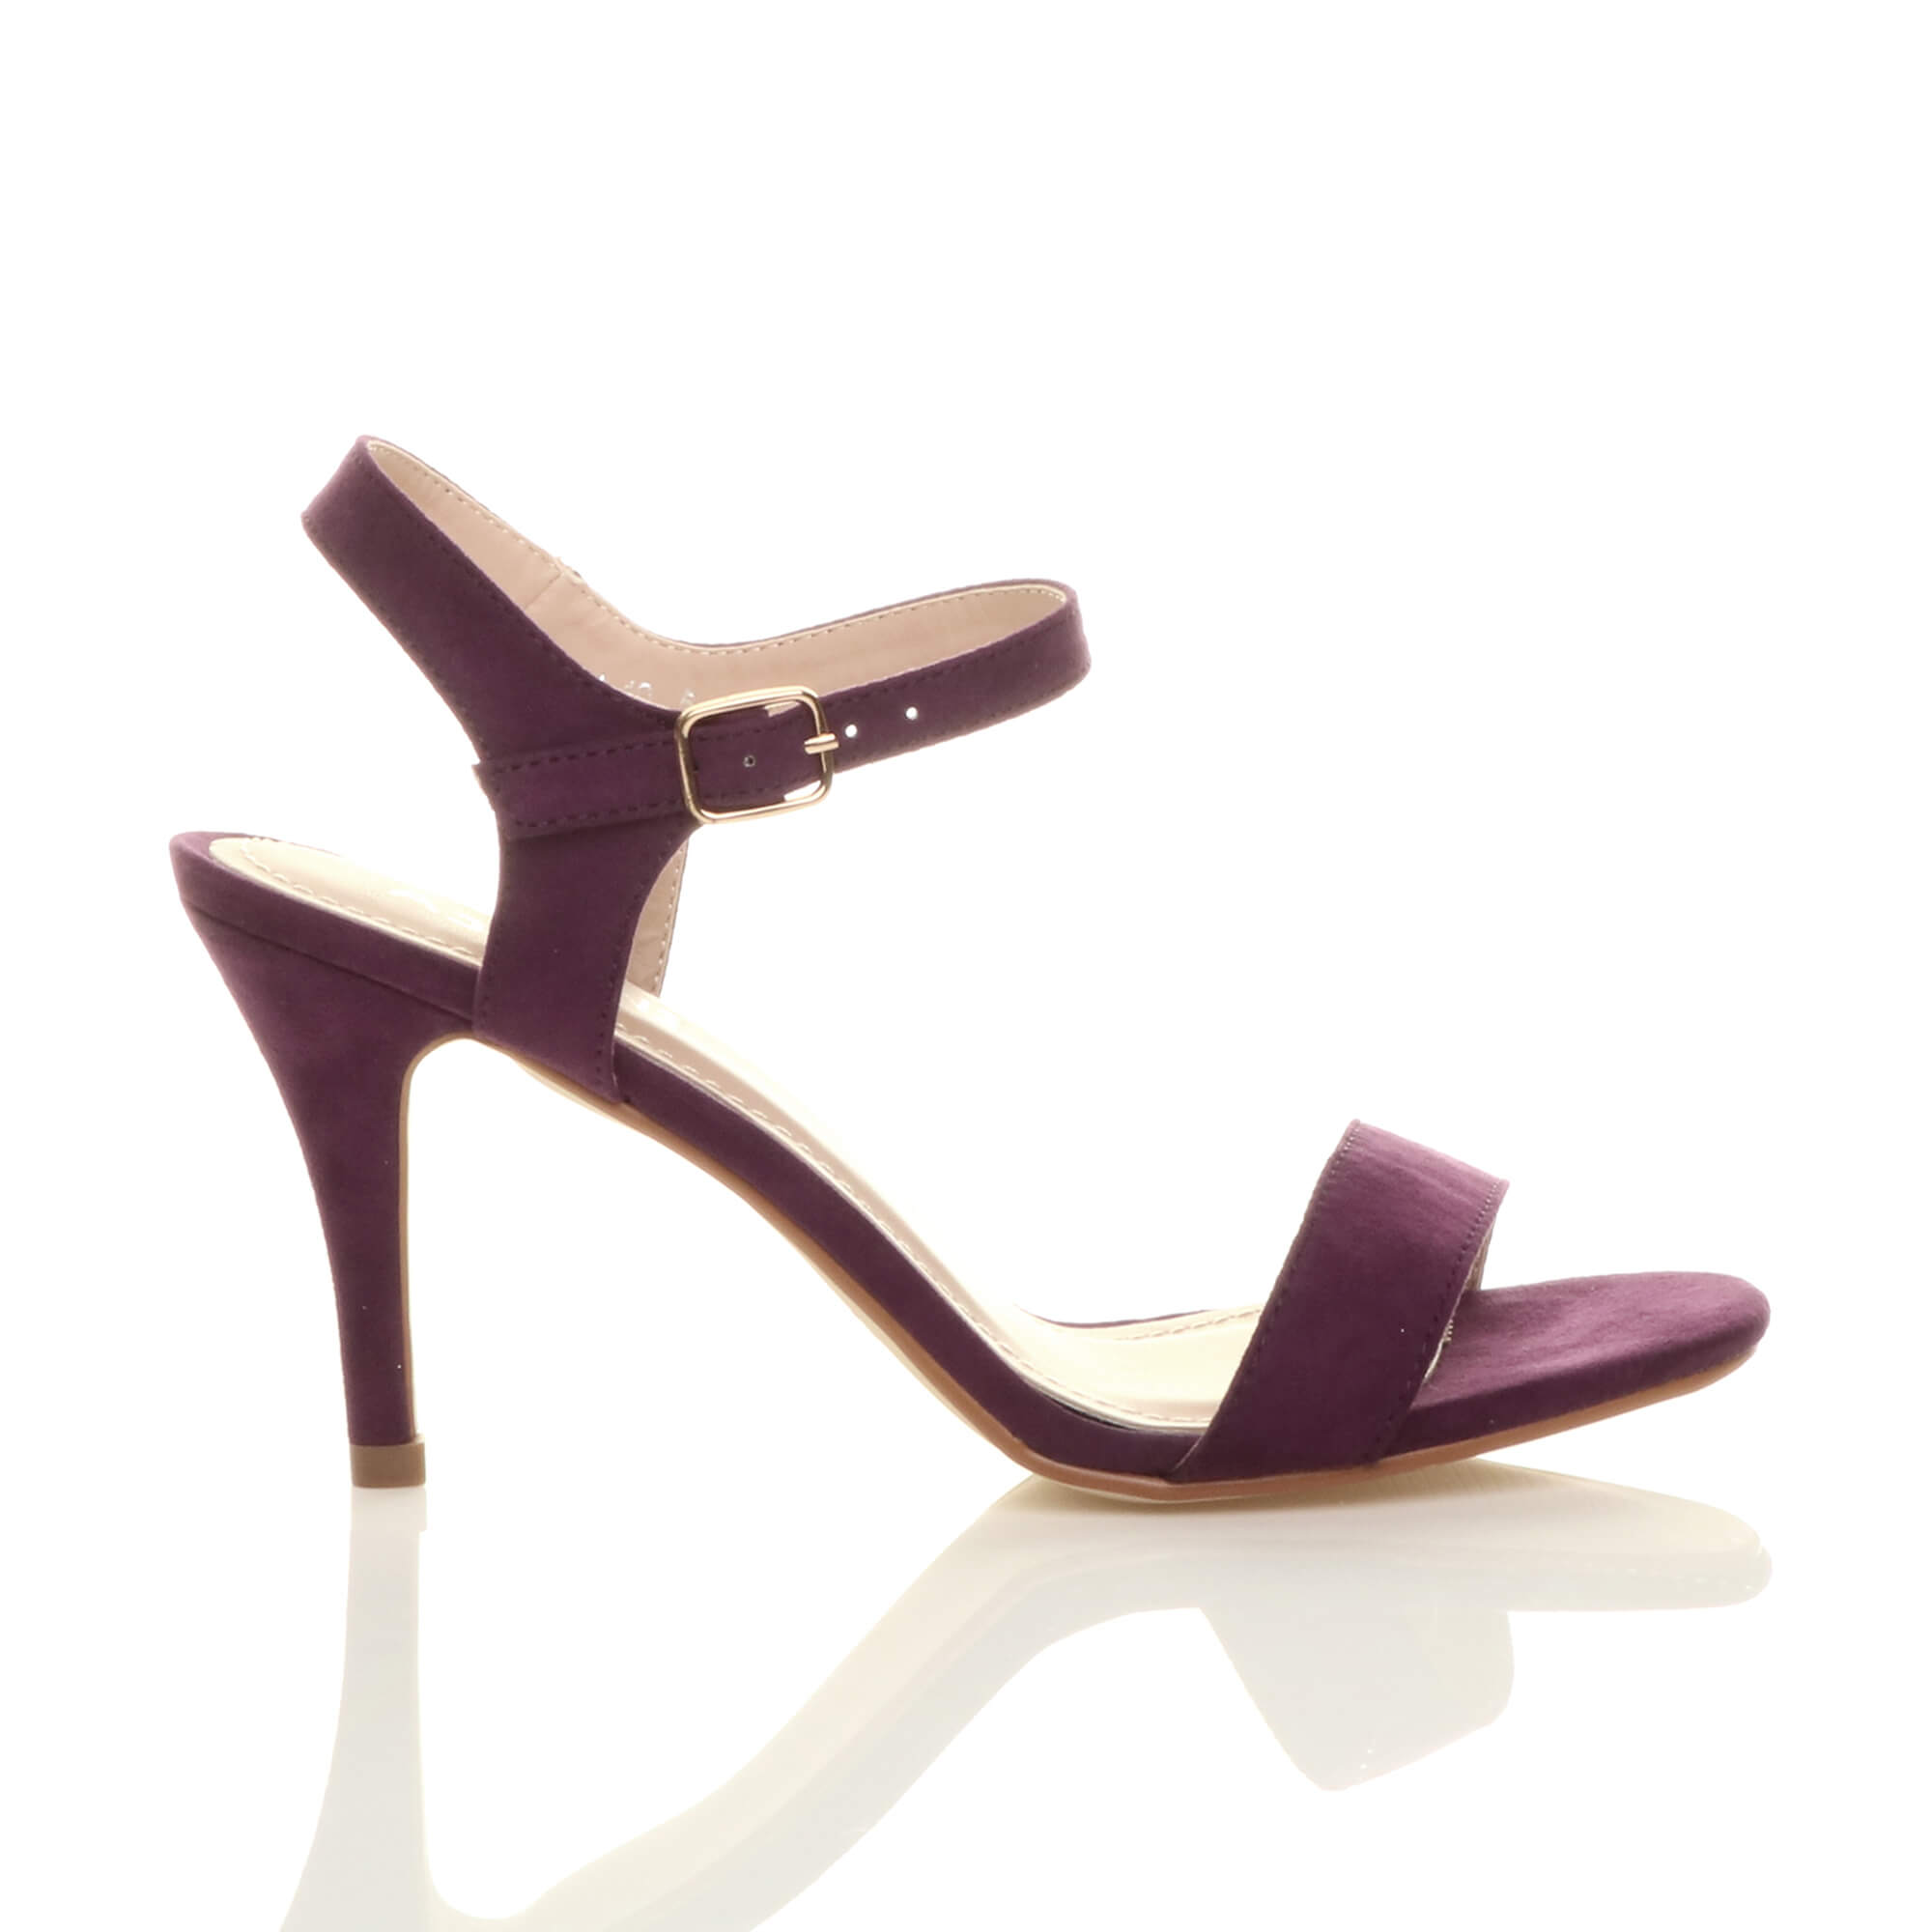 WOMENS-LADIES-HIGH-HEEL-BUCKLE-STRAPPY-BASIC-BARELY-THERE-SANDALS-SHOES-SIZE thumbnail 108